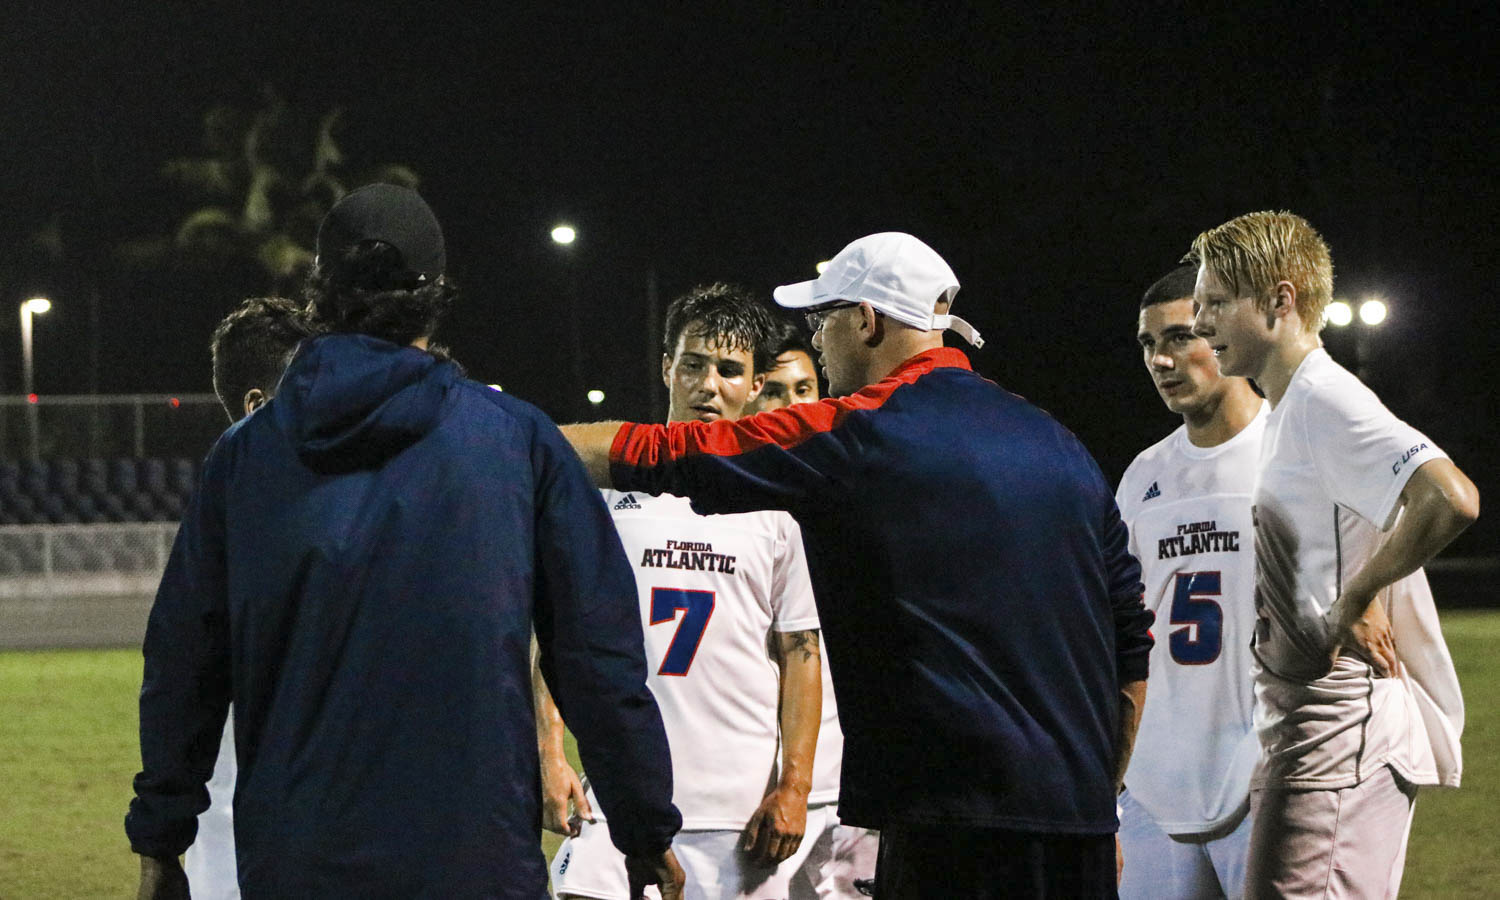 FAU head coach Joey Worthen and FAU assistant coach Jose Robles give guidance to players during the soccer match against Jacksonville. Photo by Lauren Sopourn